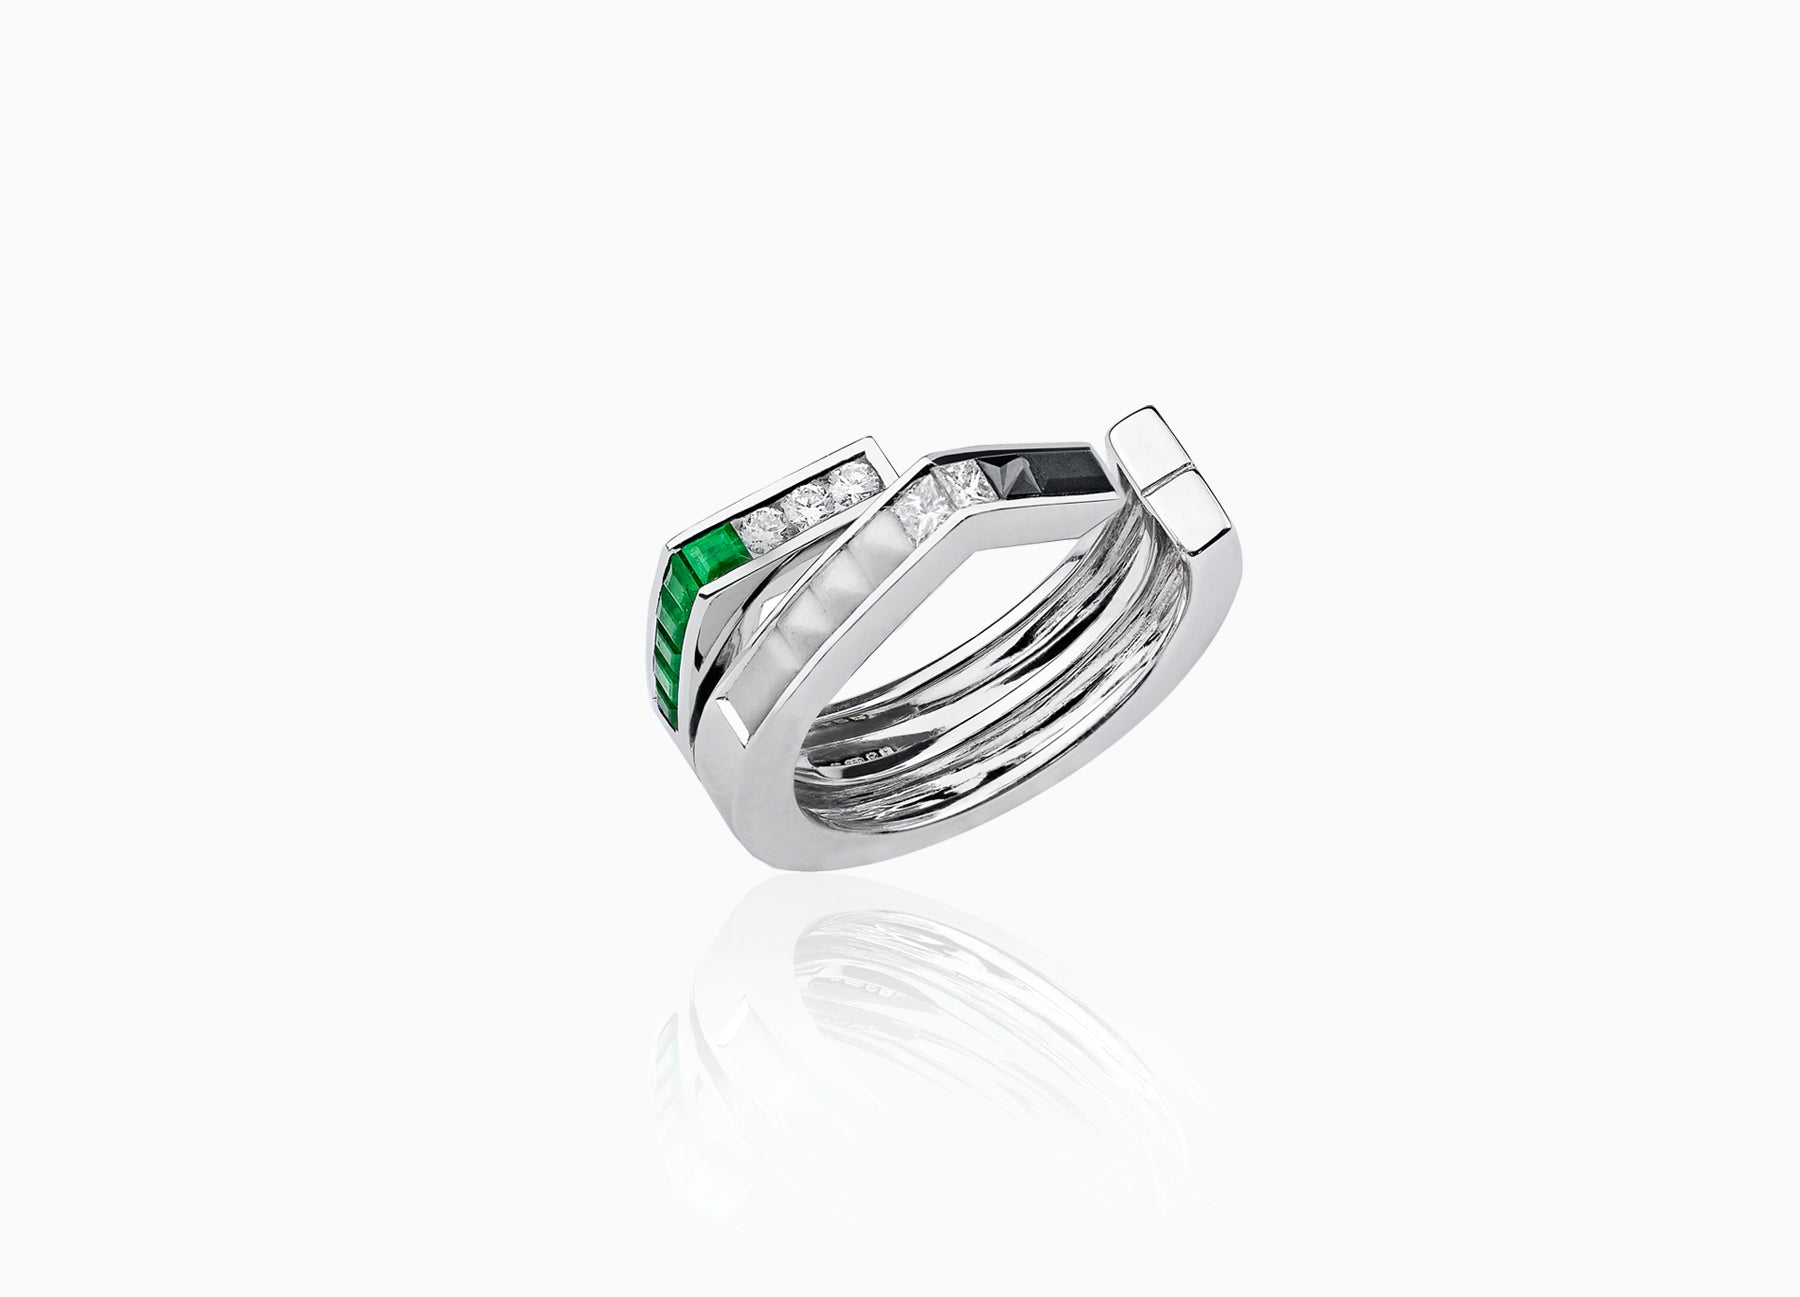 ART DECO 2-ROW BAND RING